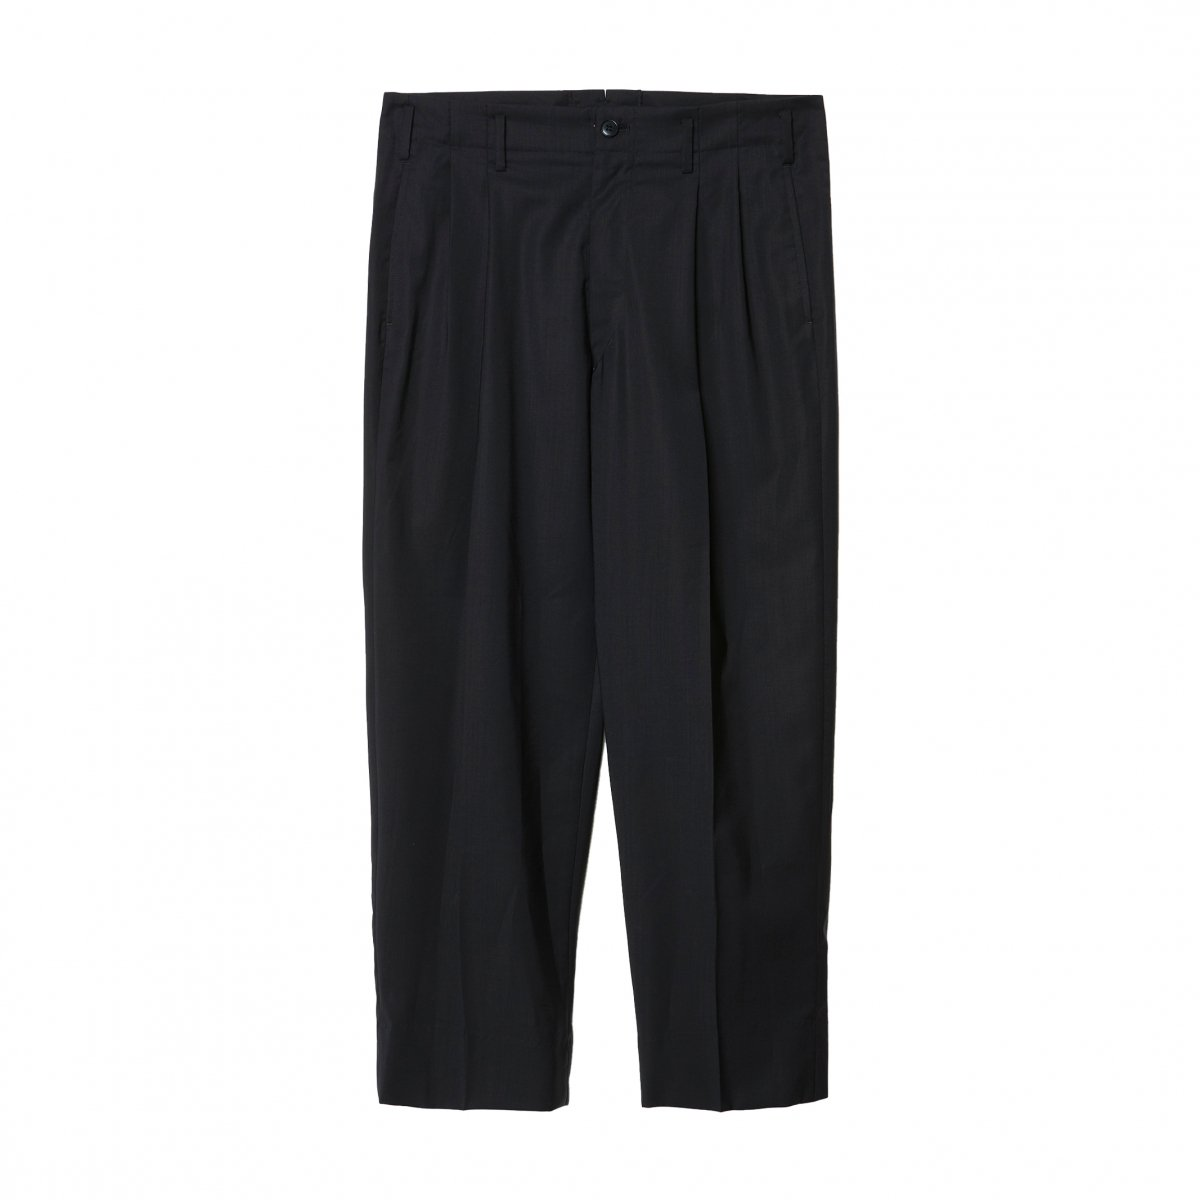 <img class='new_mark_img1' src='https://img.shop-pro.jp/img/new/icons5.gif' style='border:none;display:inline;margin:0px;padding:0px;width:auto;' />ALBINO SUPER'100 TAPARED 2TUCK TROUSERS / BLACK